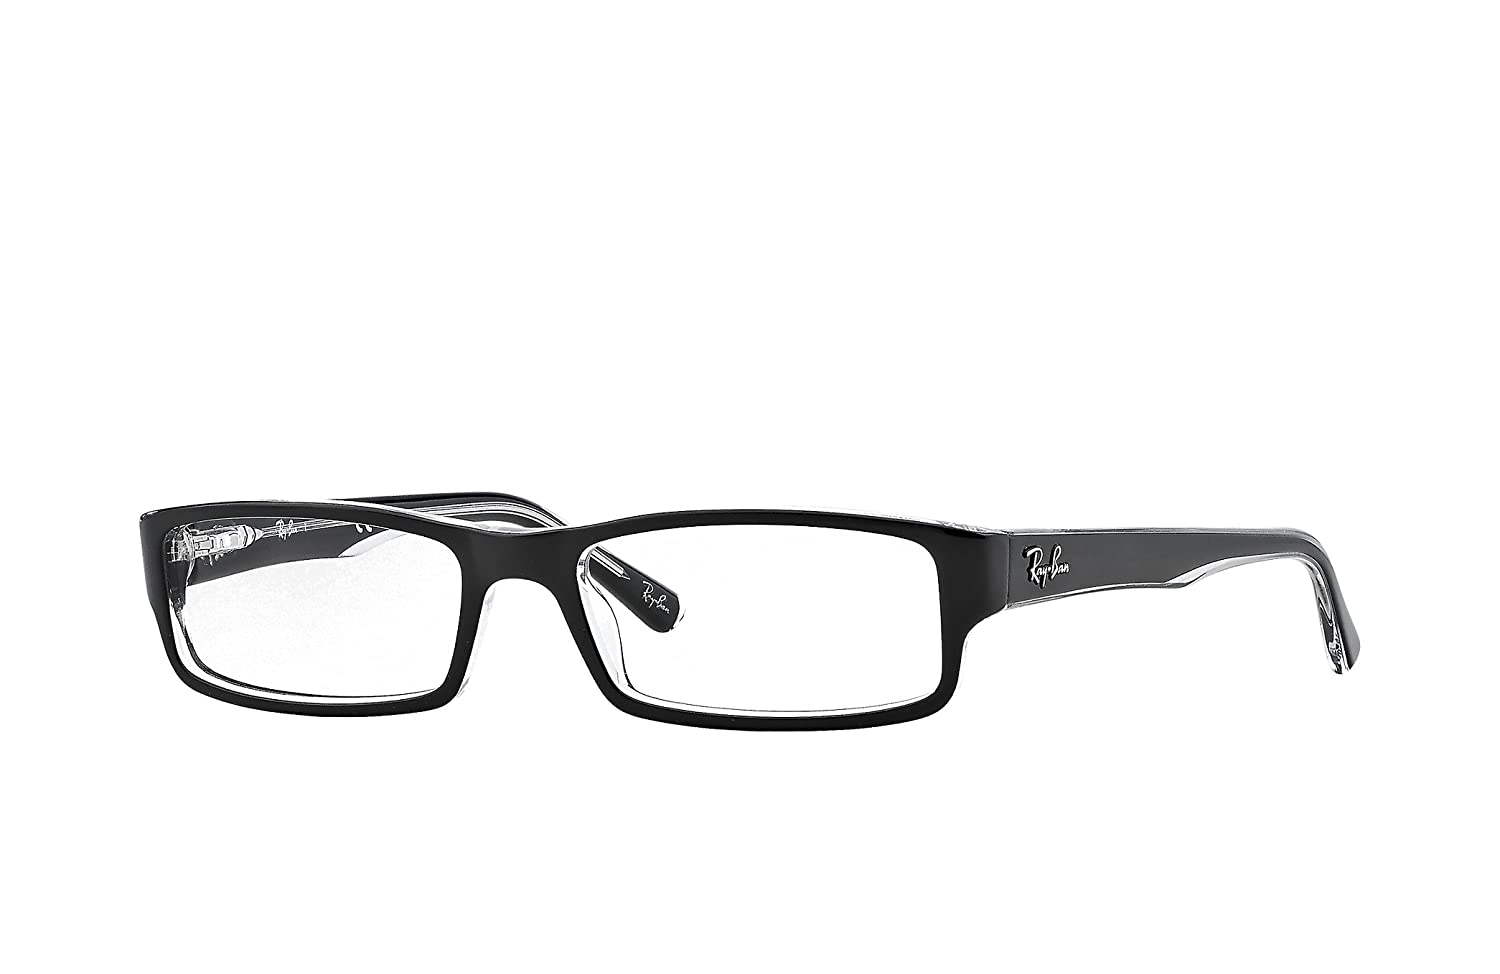 8d7a2b088ef Amazon.com  RAY BAN 5246 SIZE 50 READING GLASSES +1.75  Clothing